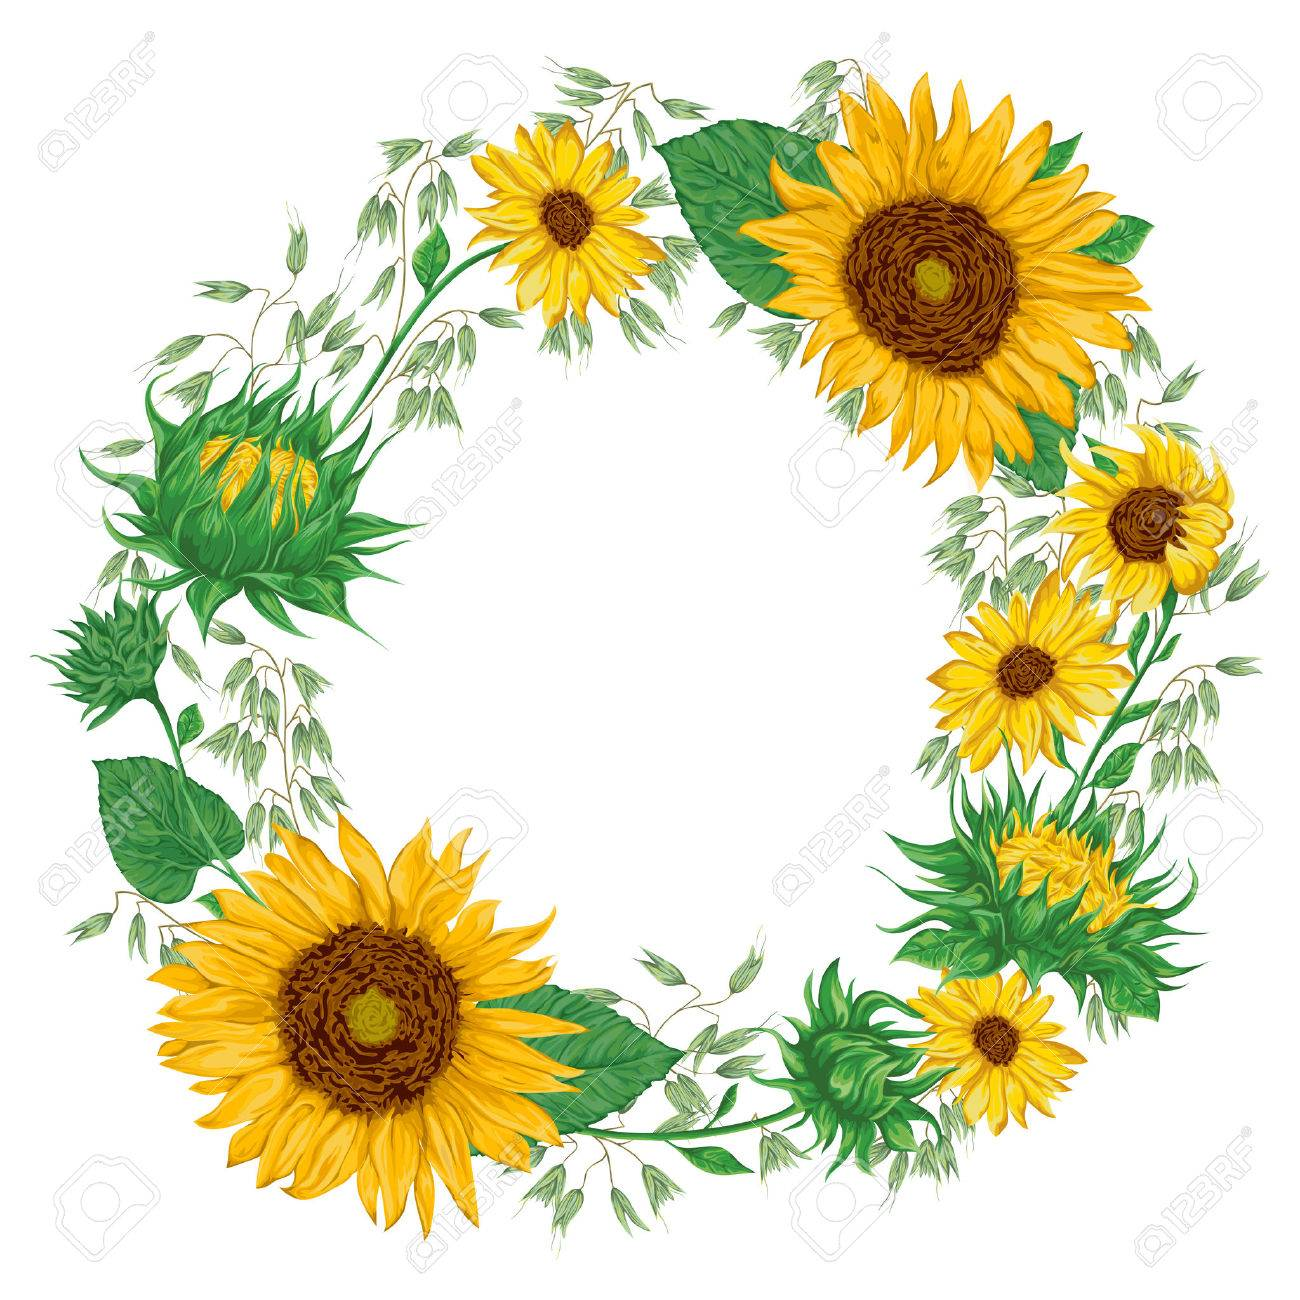 Wreath With Sunflowers And Oat Rustic Floral Background Vintage Royalty Free Cliparts Vectors And Stock Illustration Image 69916937